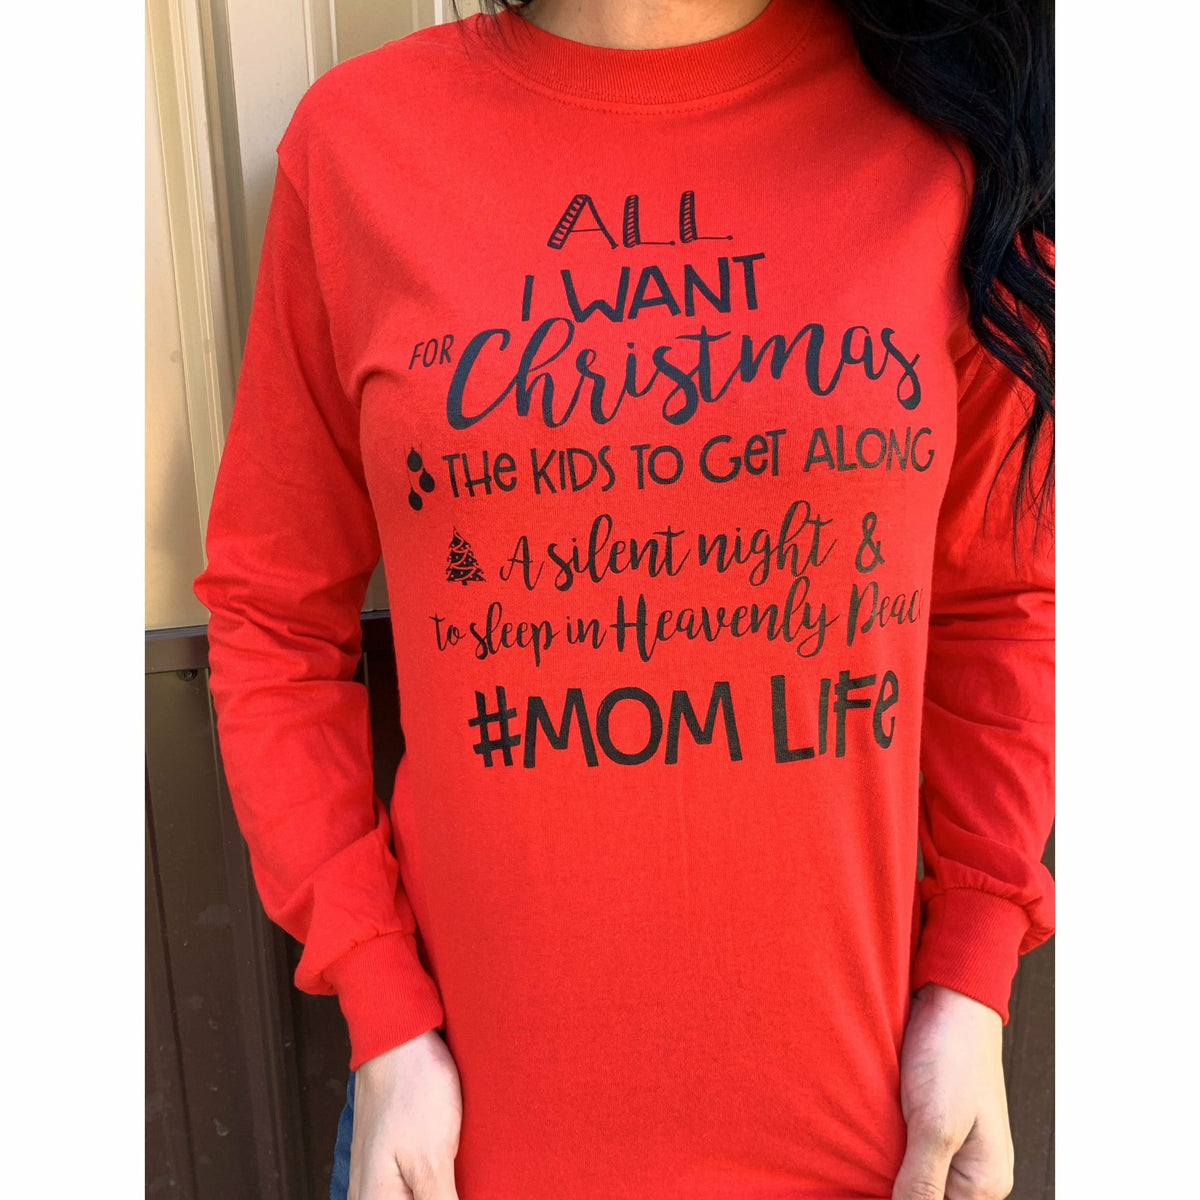 Silent Night and Heavenly Peace Mom life Tee